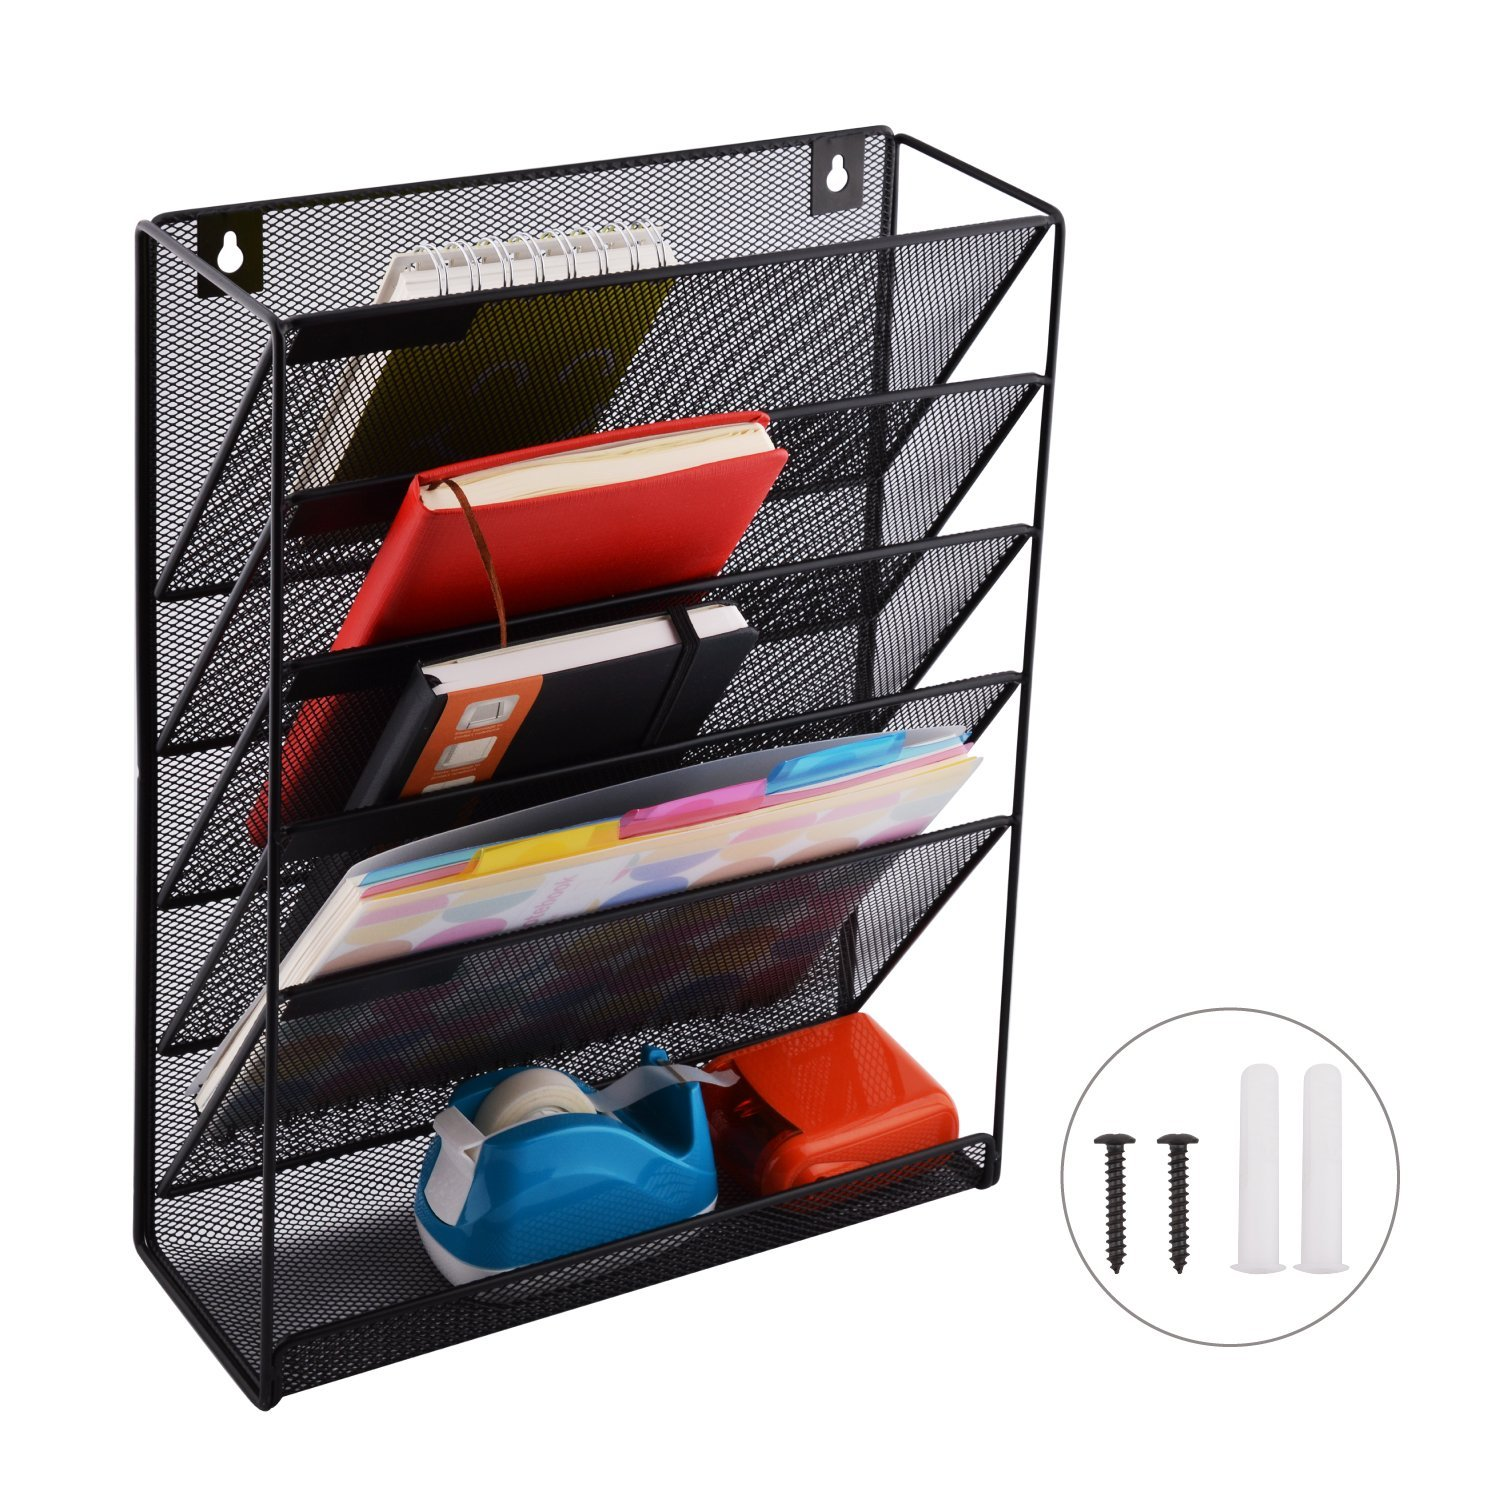 Keri /& Joachim Wall File Holder 30 Pocket Hanging File Folder Storage Vertical Wall Chart Organizer Comes with 30 Two-Toned Coloured File Folders Letter Size ⅓ Cut and 6 Heavy Duty Picture Hooks